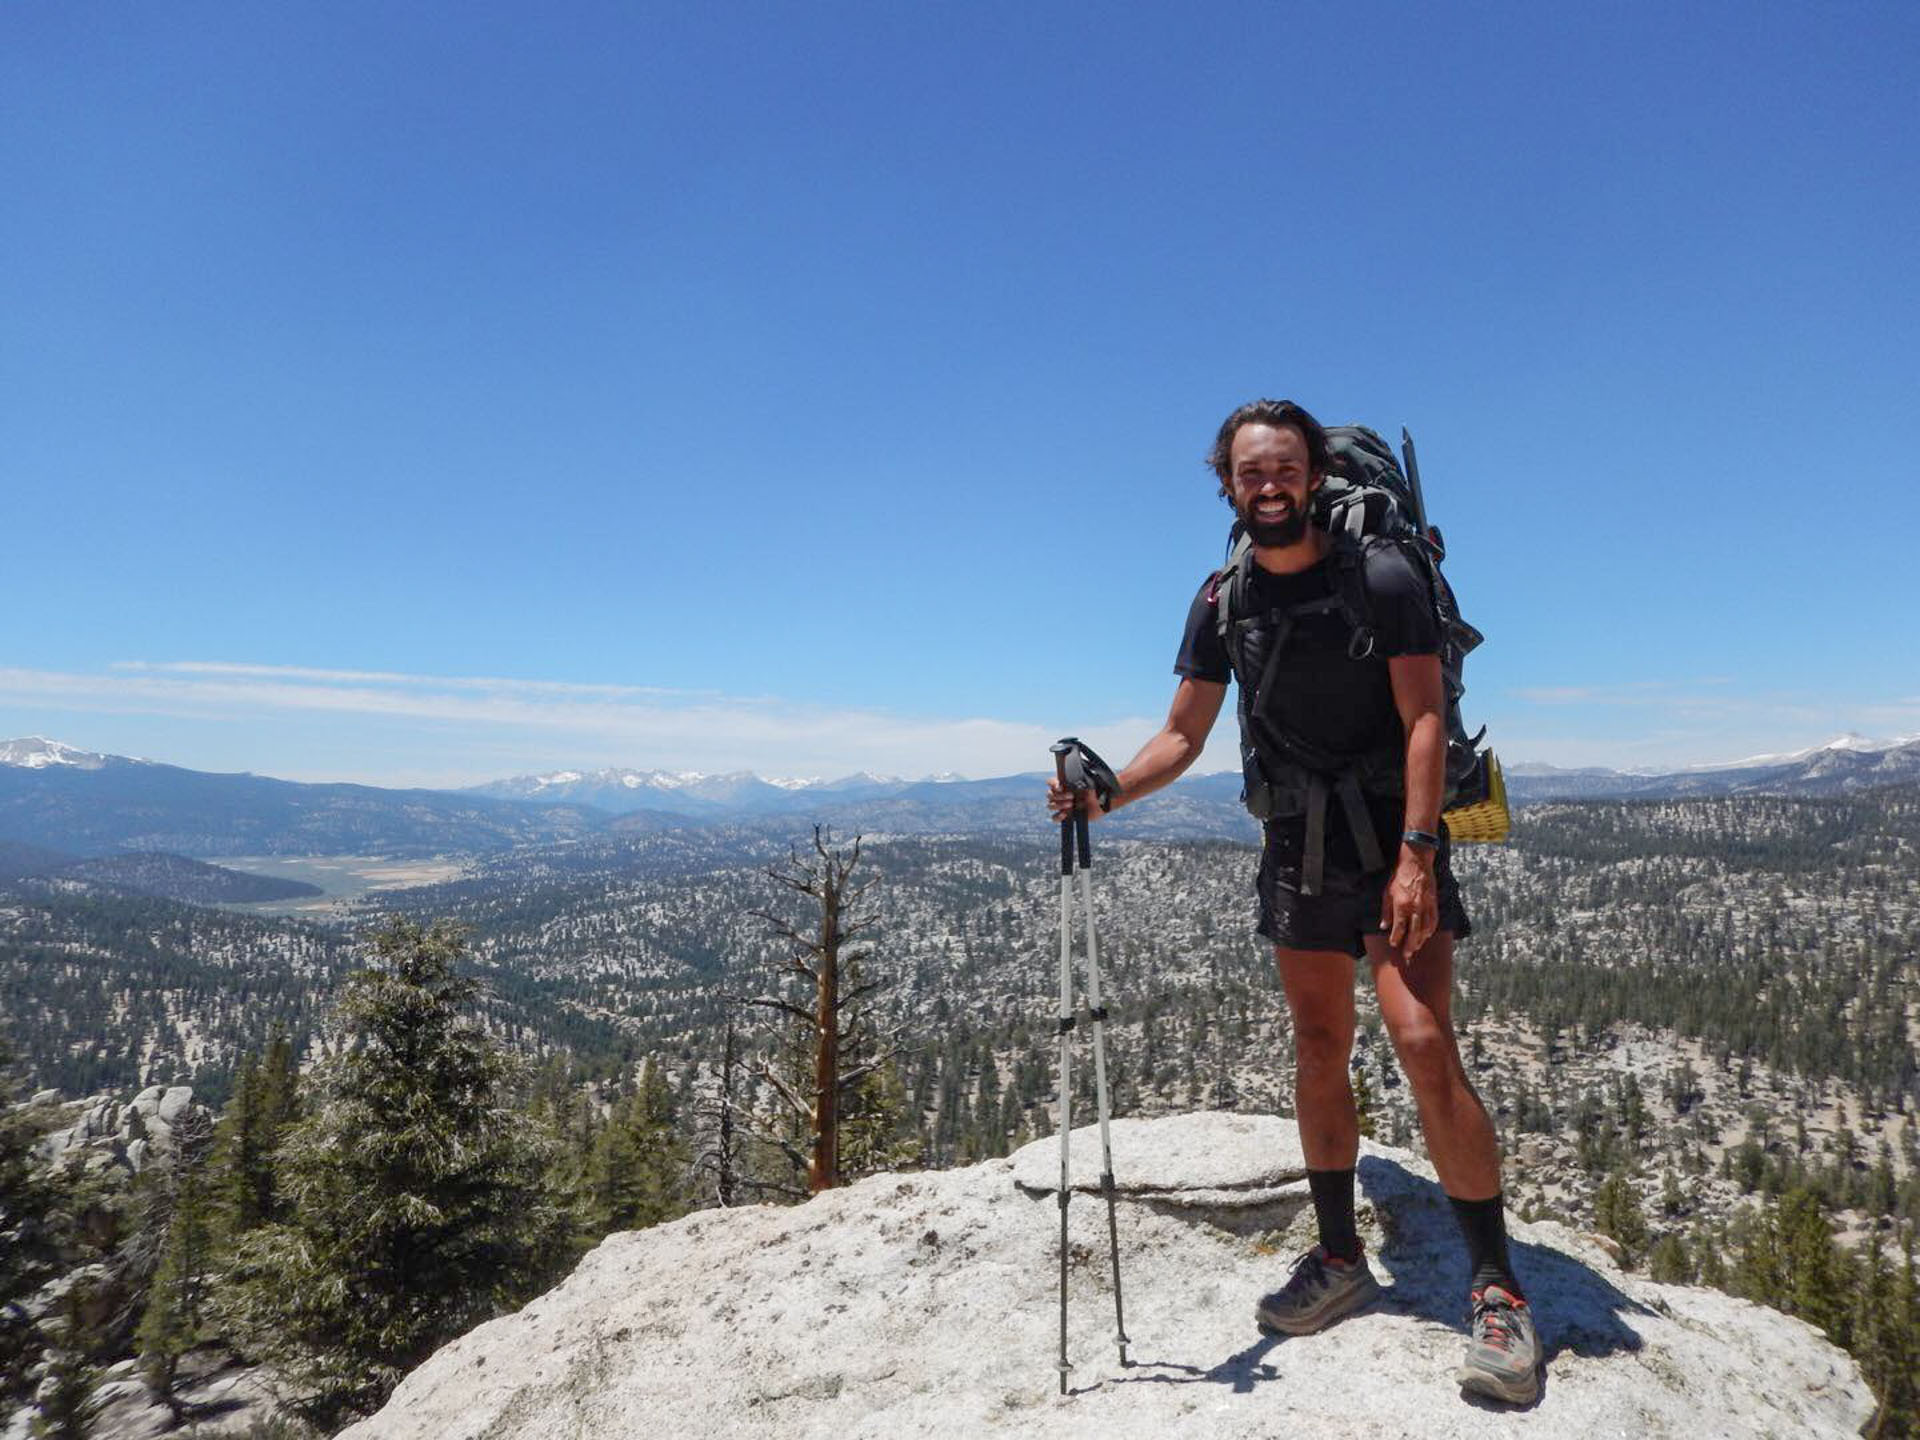 What's It Like To Be LGBTQIA+ and an Explorer? Dan